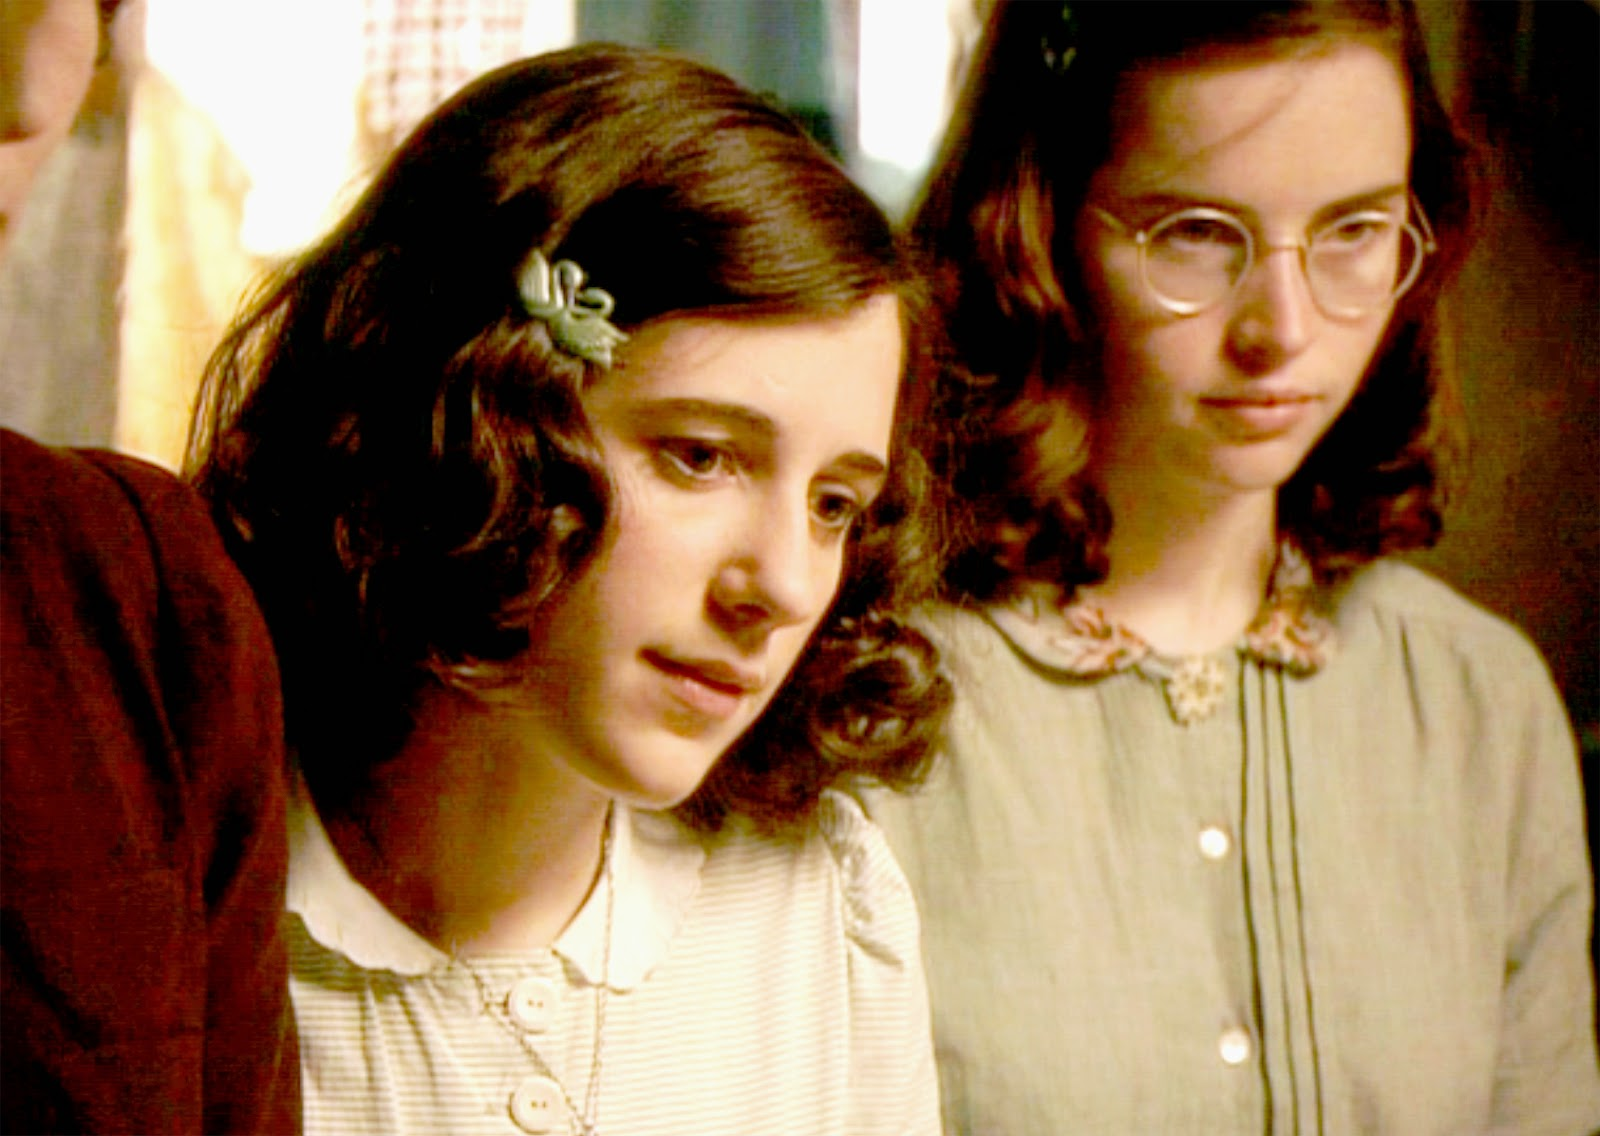 diary of anne frank The memoir anne frank: the diary of a young girl is an interesting and important book that i found very remarkable its very informative on how anne, her family, and friends went into hiding from the nazi war and how they survived from what little they had.